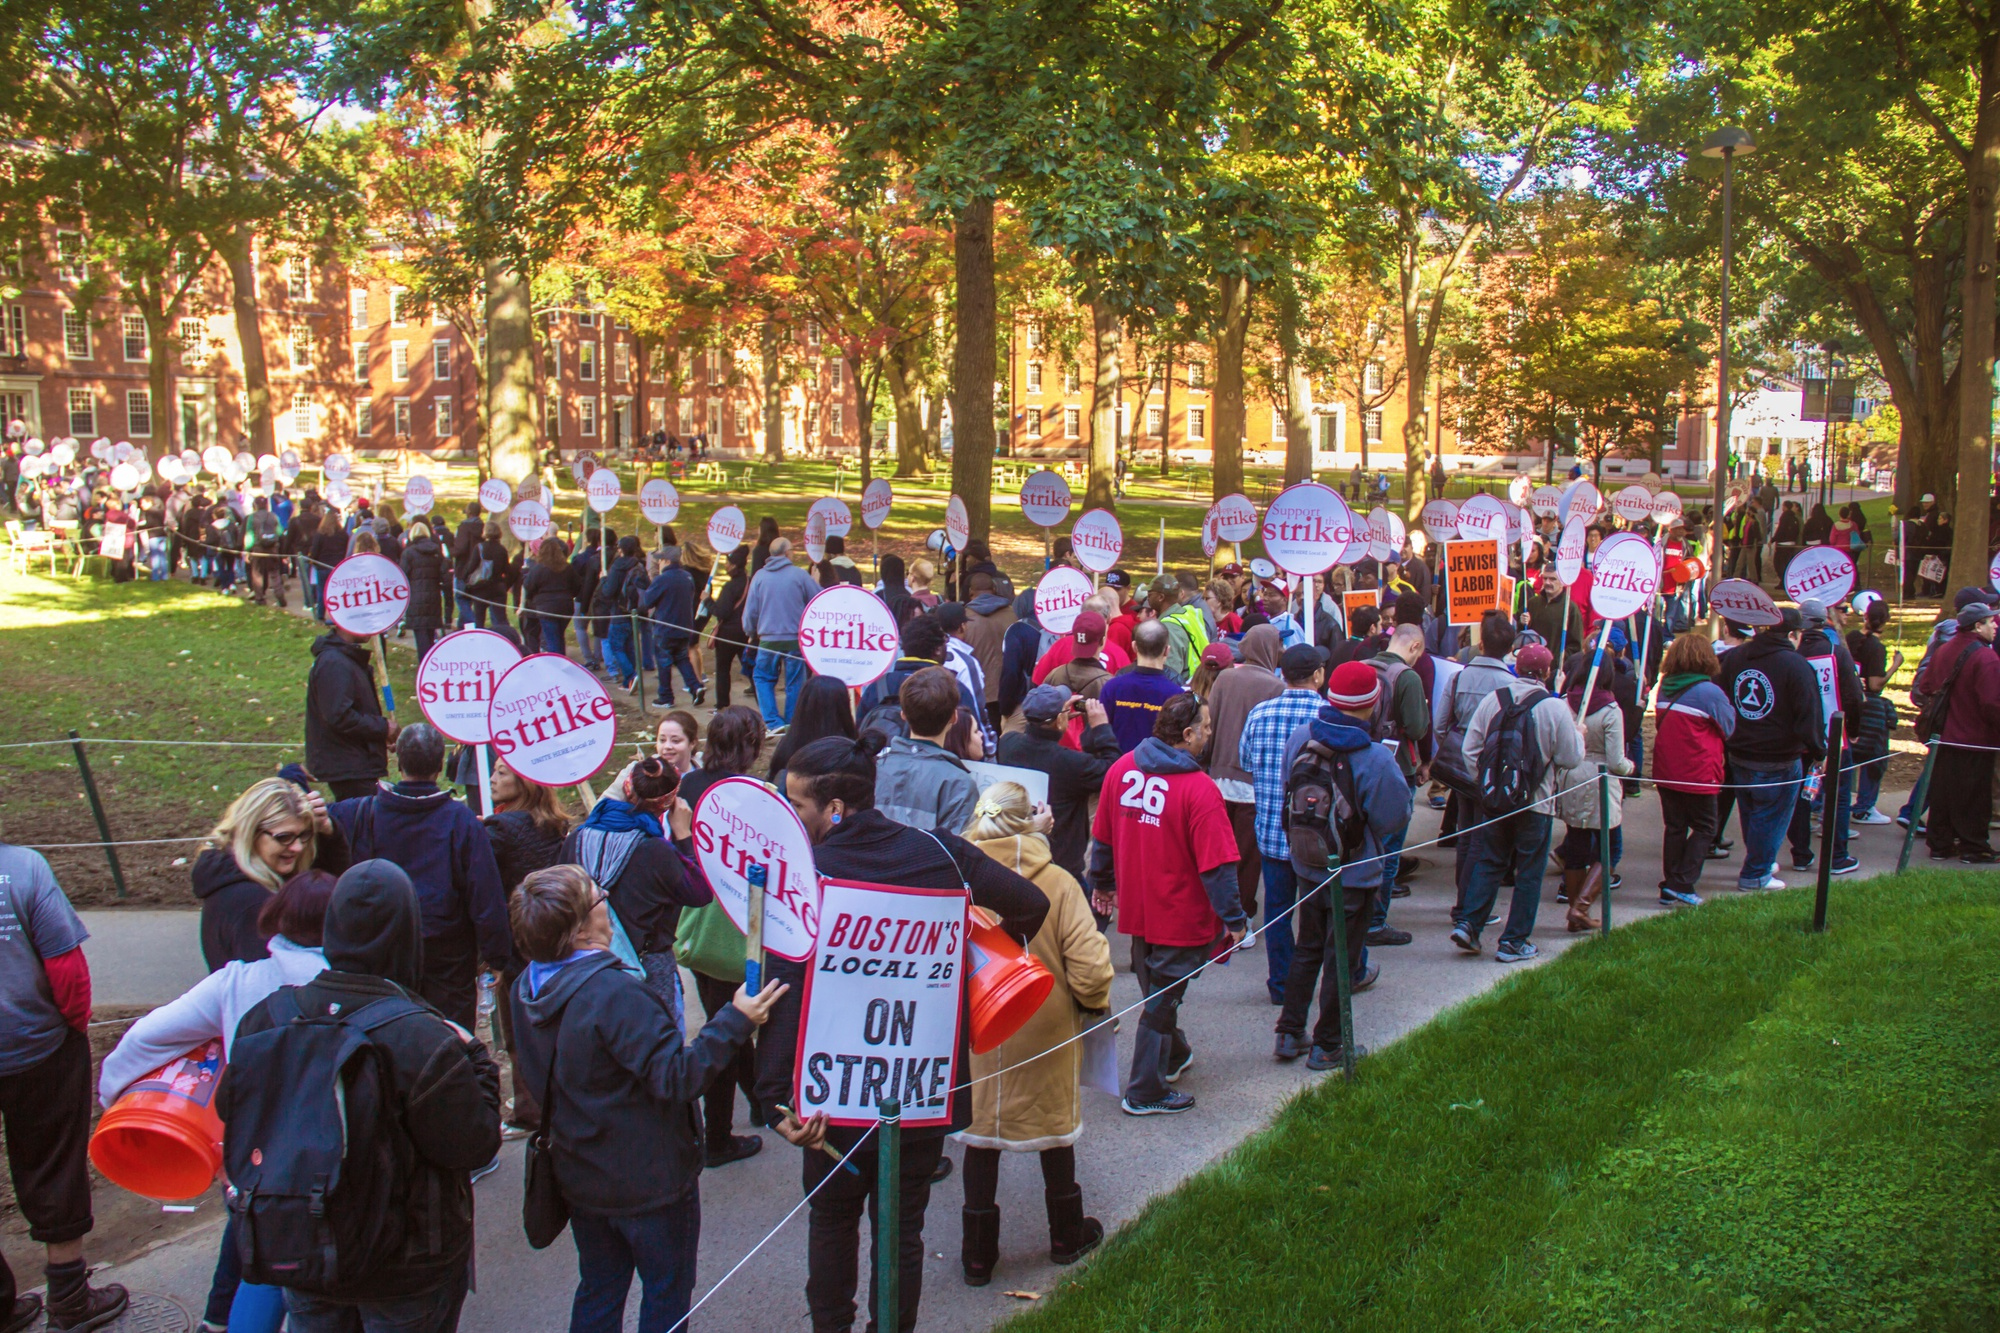 HUDS workers, families, and supporters chanted and marched through Harvard Yard Wednesday morning.